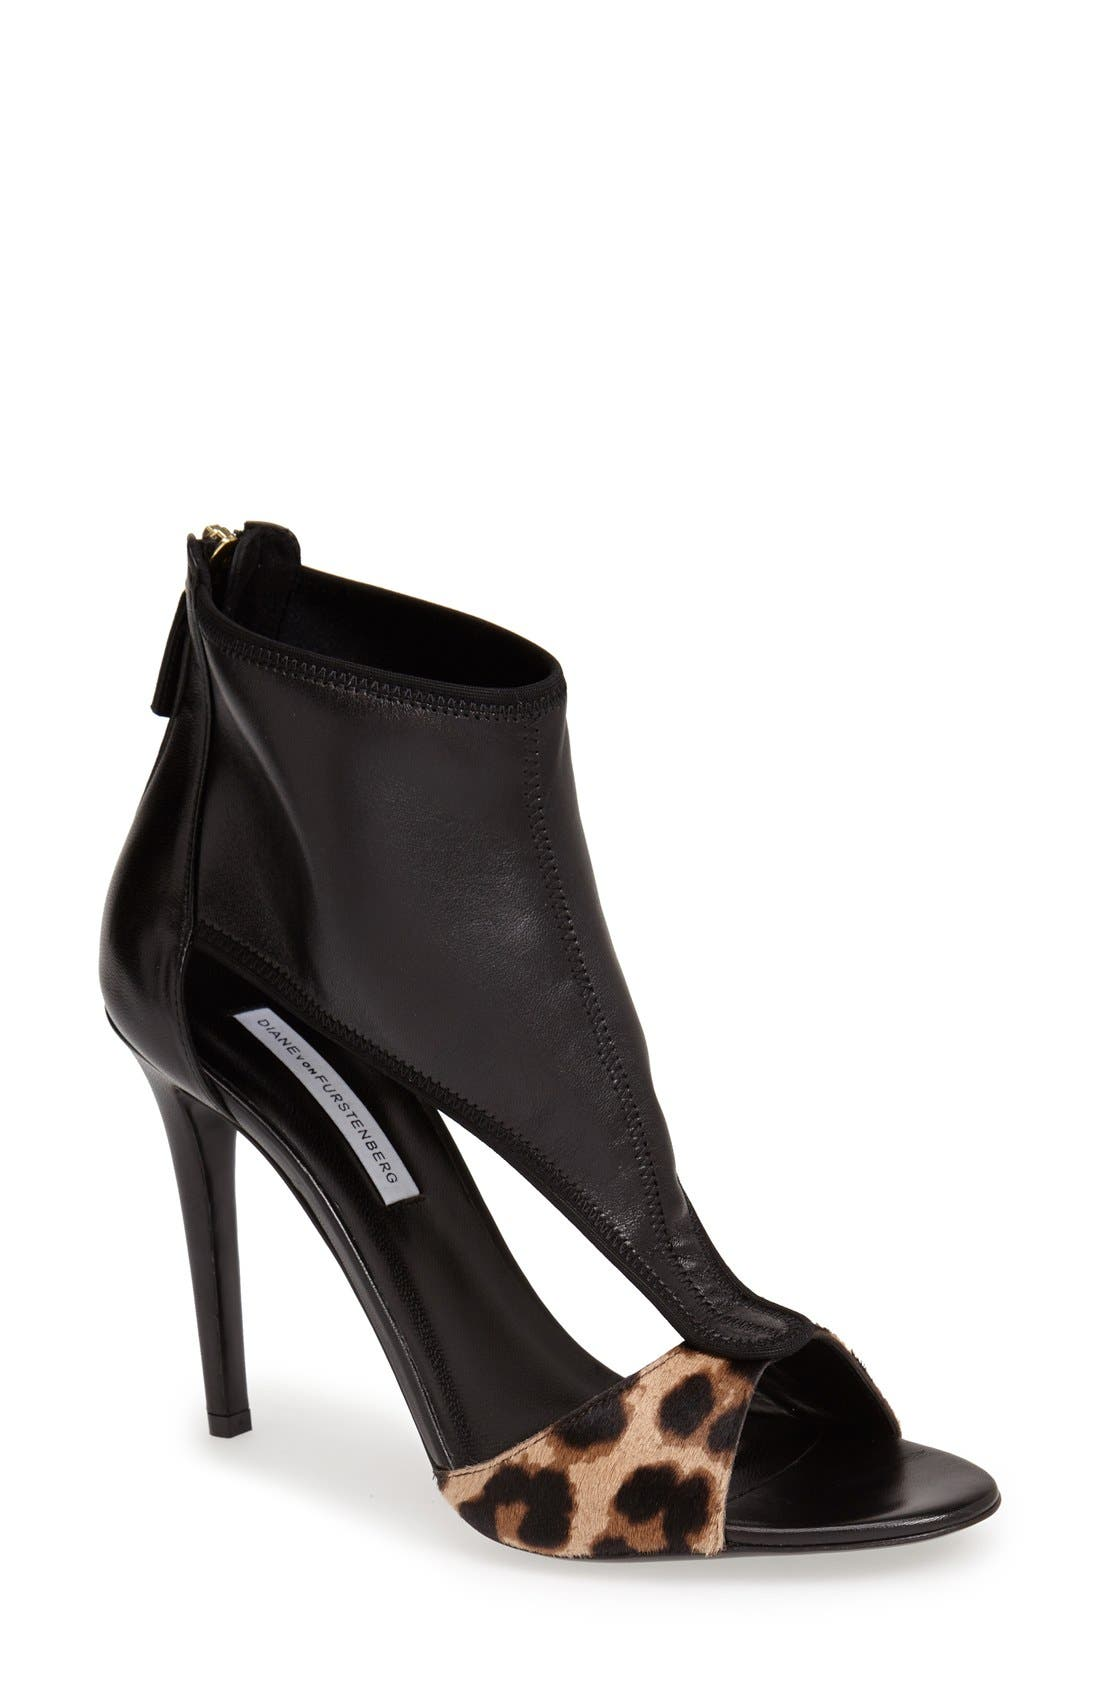 Main Image - Diane von Furstenberg 'Uffie' Leather & Calf Hair Sandal